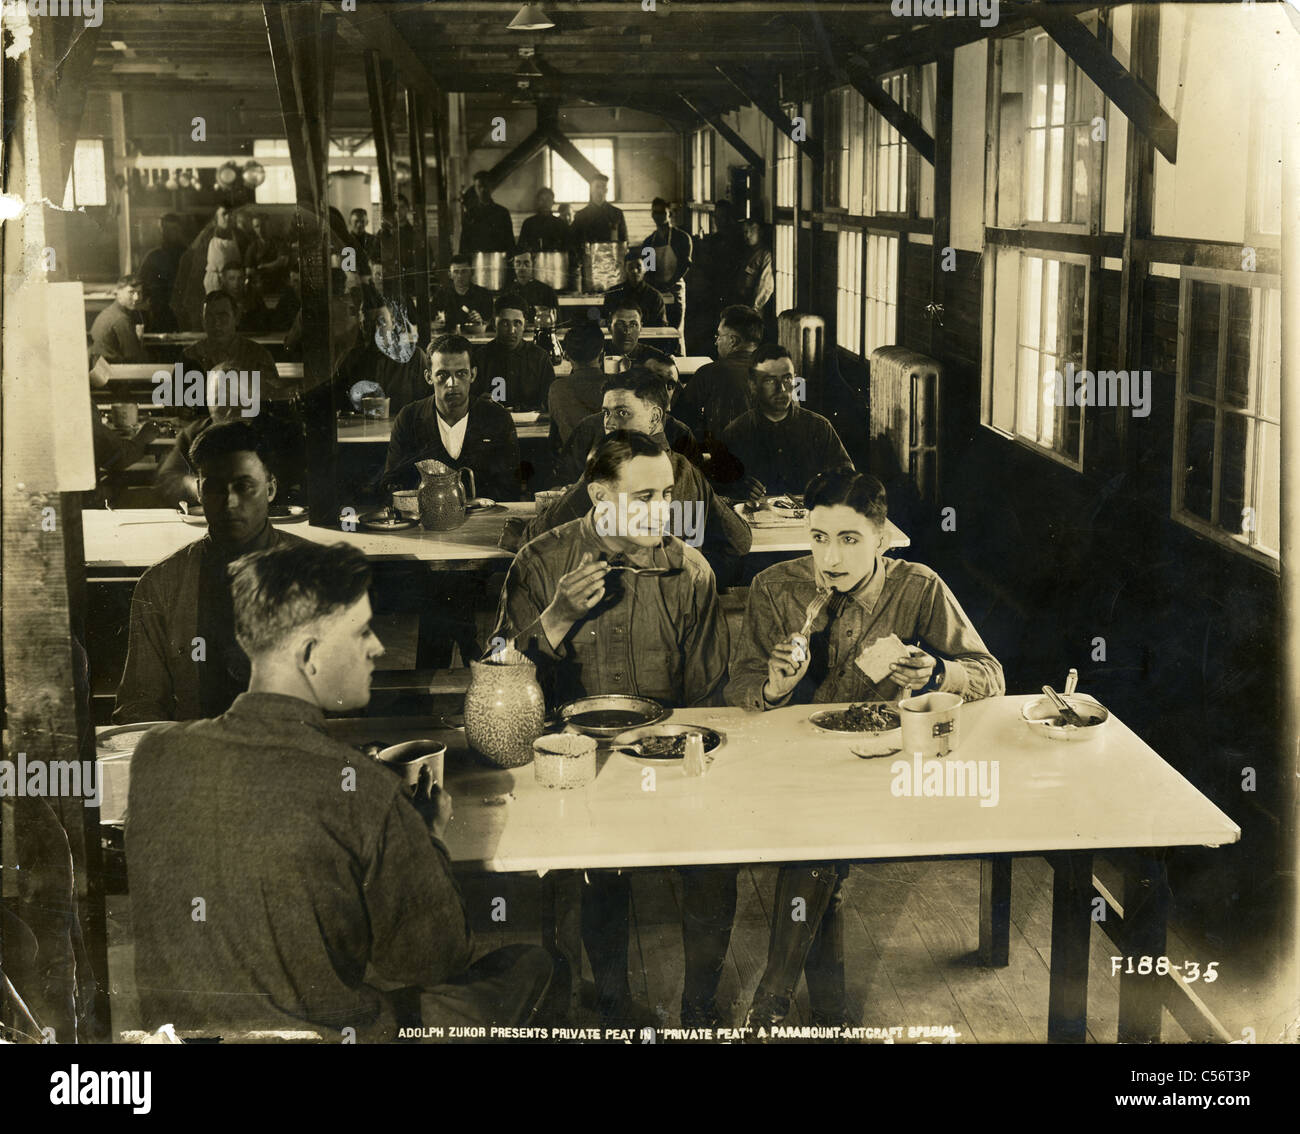 Movie still from 'Private Peat' (1918) starring Harold R. Peat. A biographical World War One war drama. - Stock Image